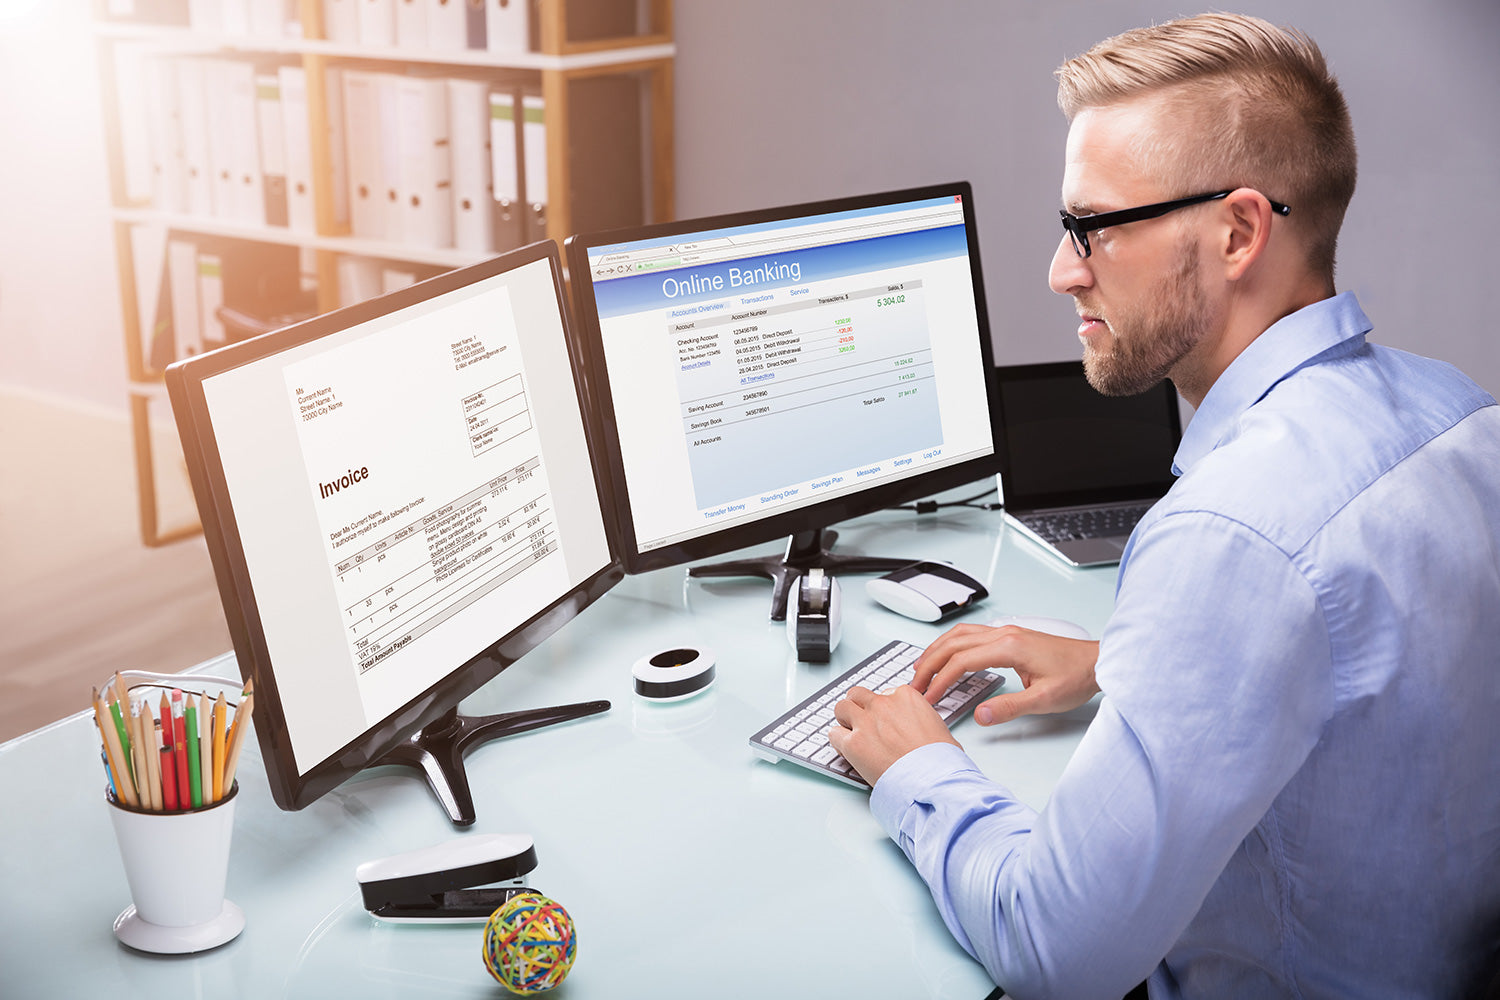 Automating accounts payable processing with automatic matching of purchase orders, invoices and delivery notes